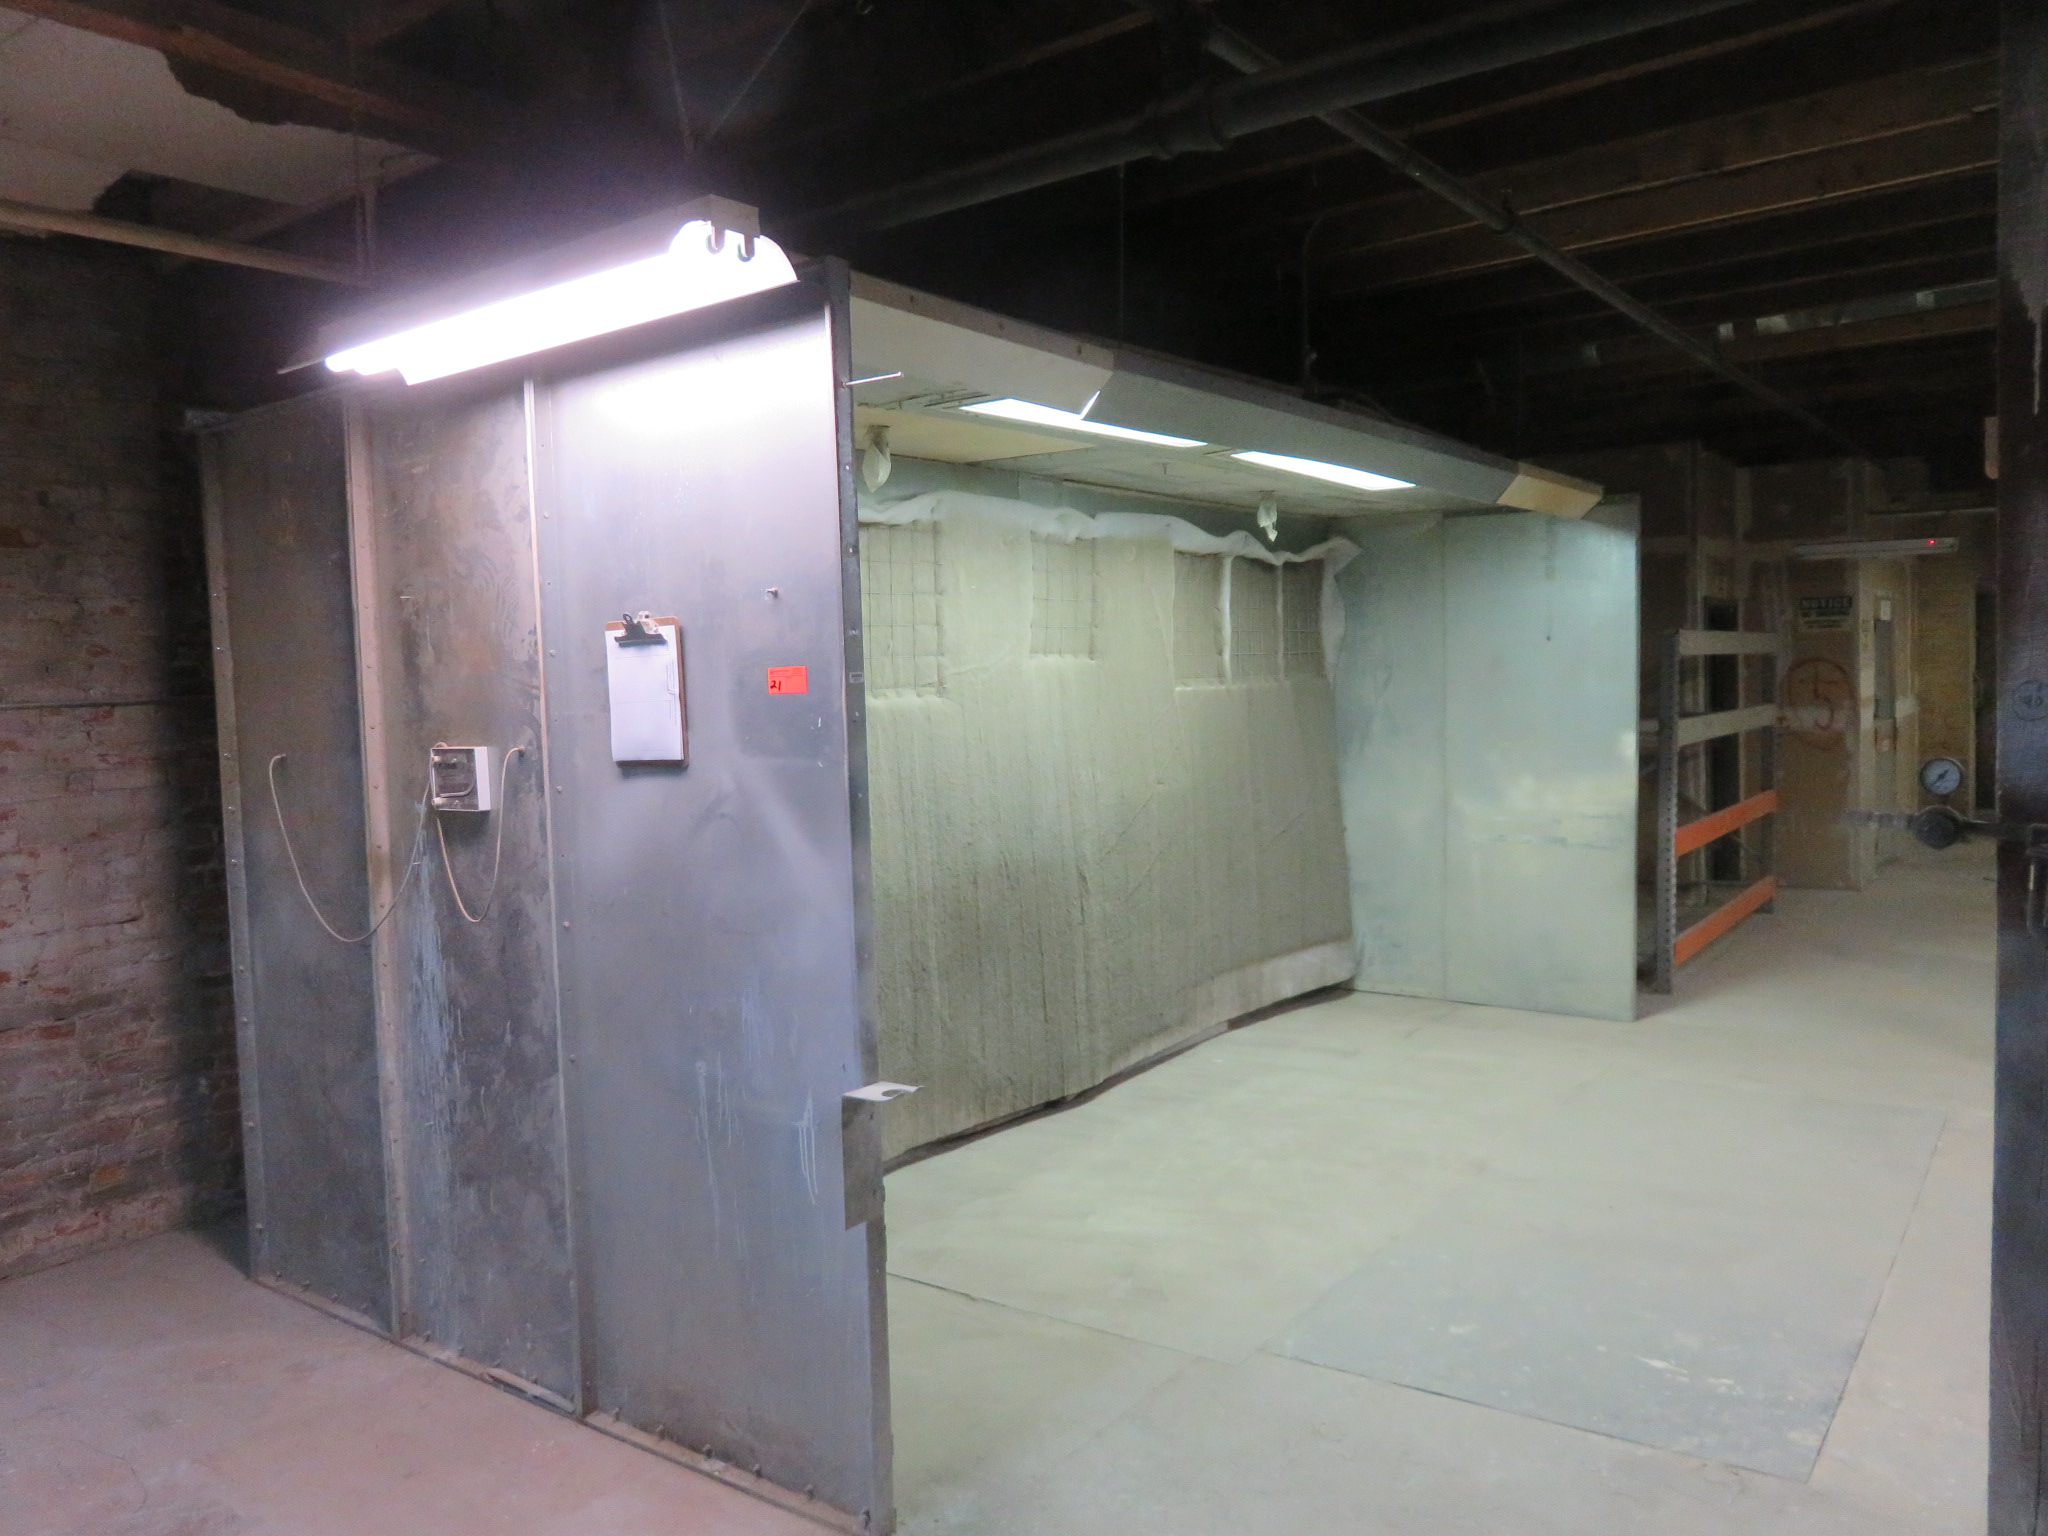 Paint Booth approx. 17 'x 8' x 8' - Image 3 of 4